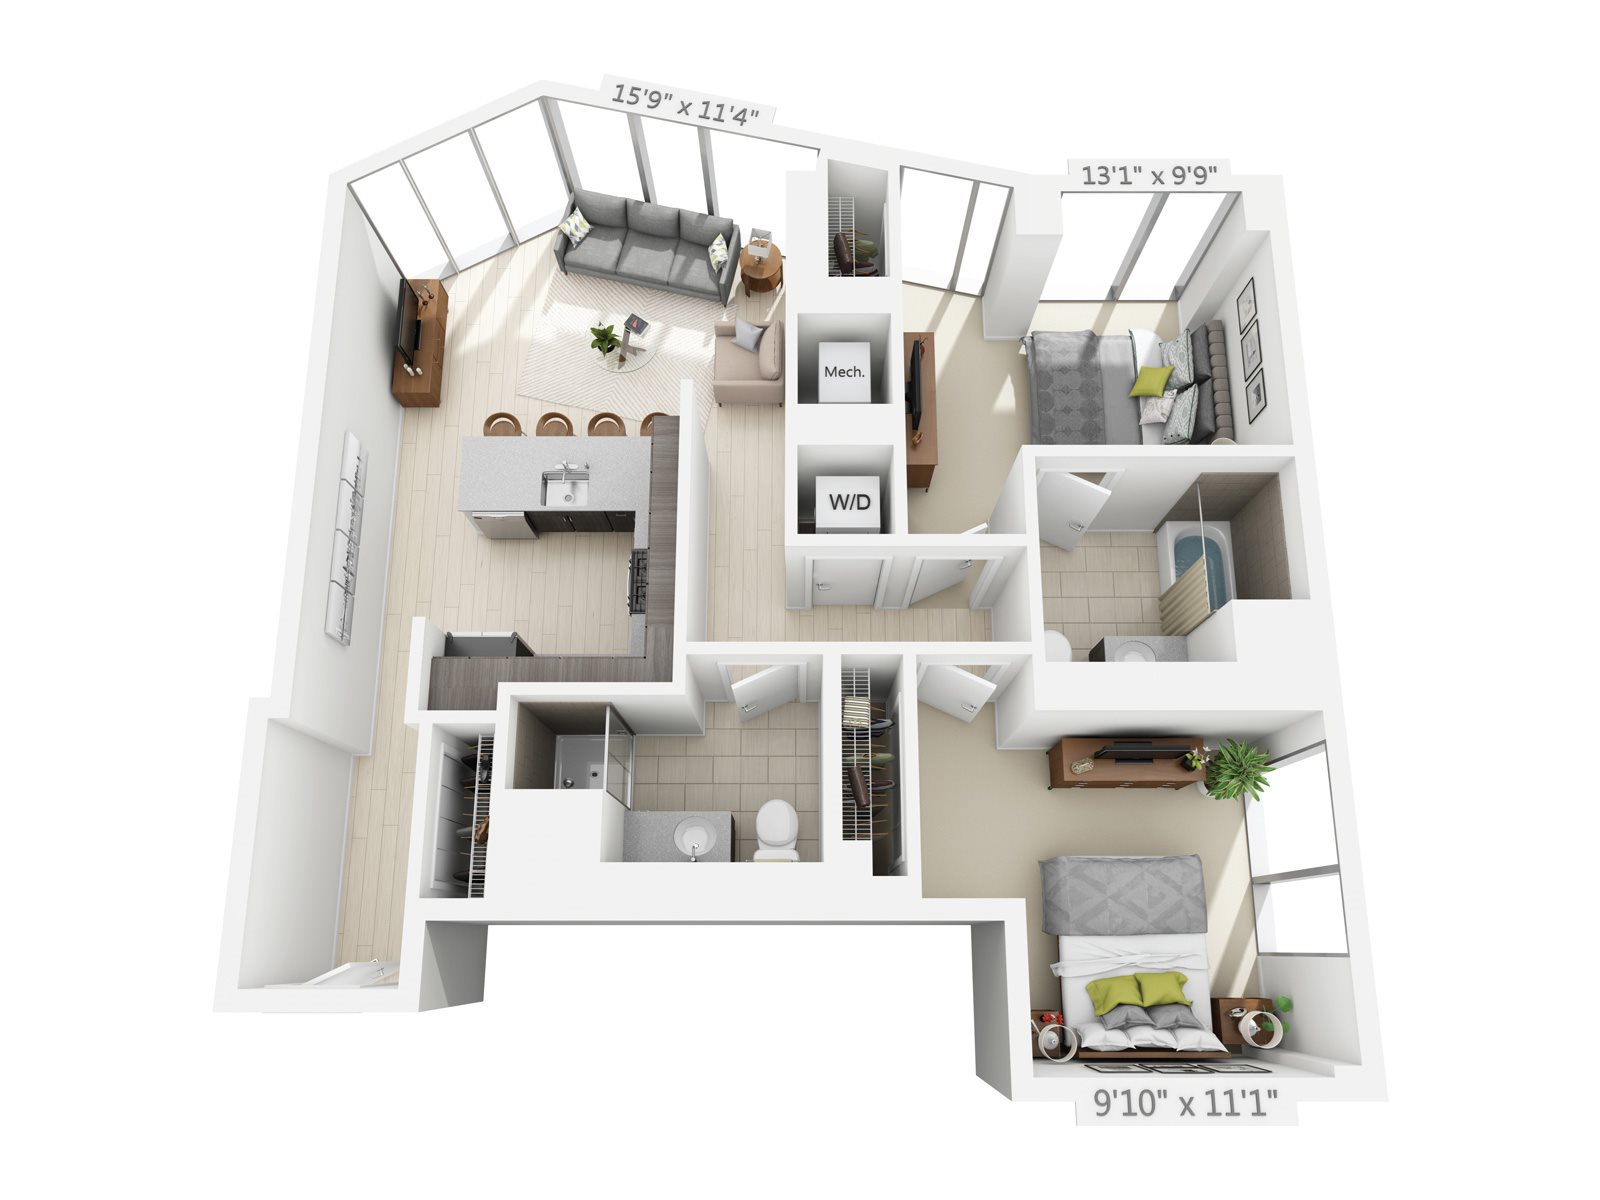 2 BEDROOM/2 BATH C2 Floor Plan 8